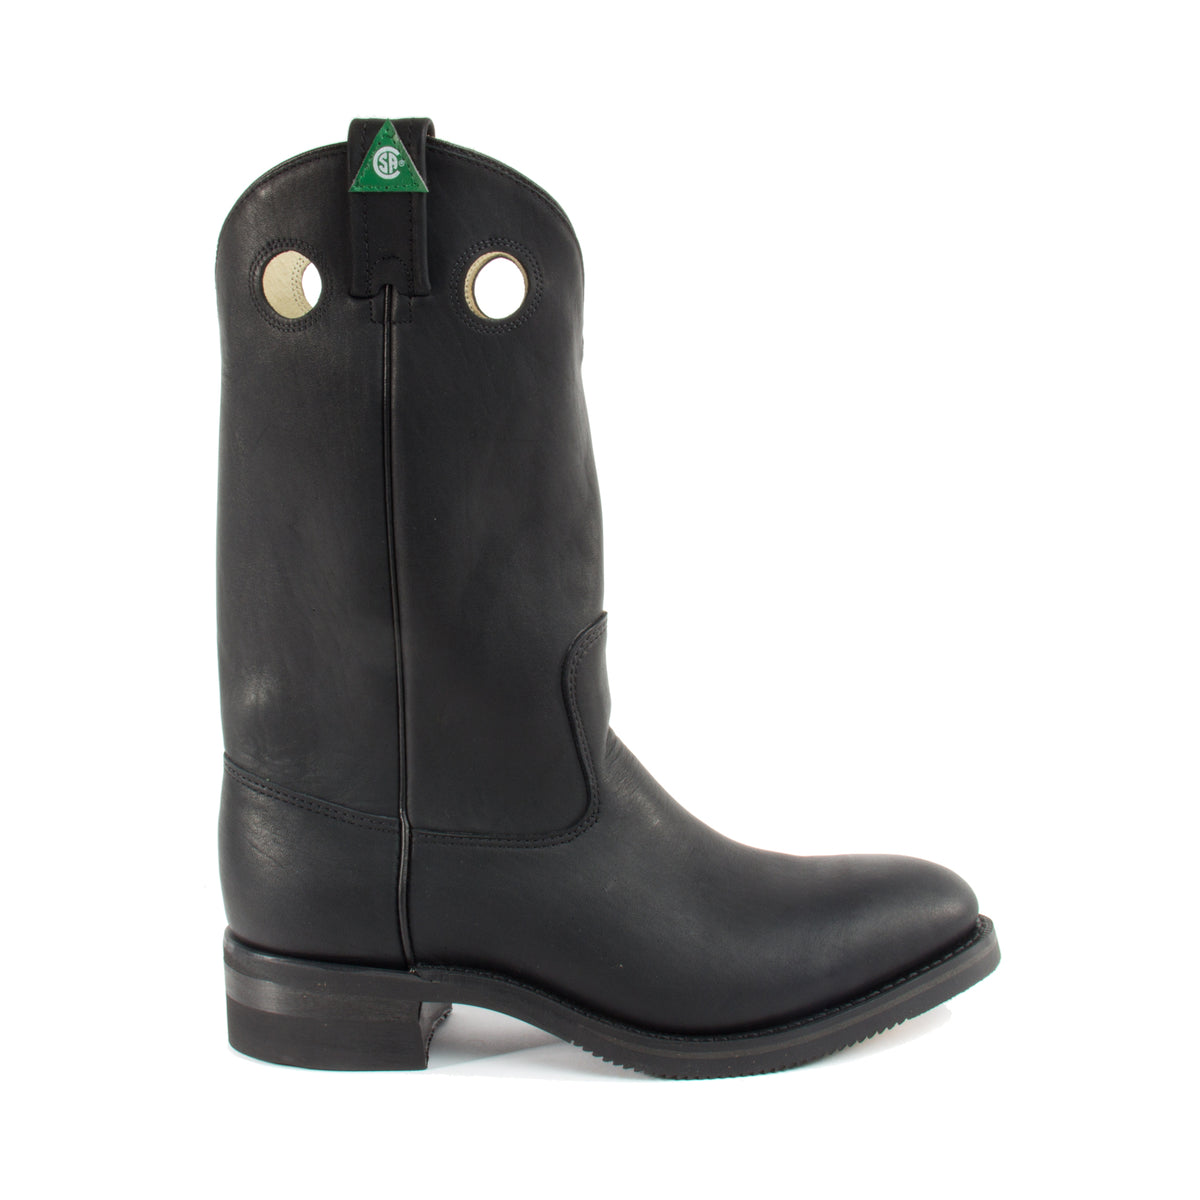 Western 12 Quot Csa Safety Boot Workboot